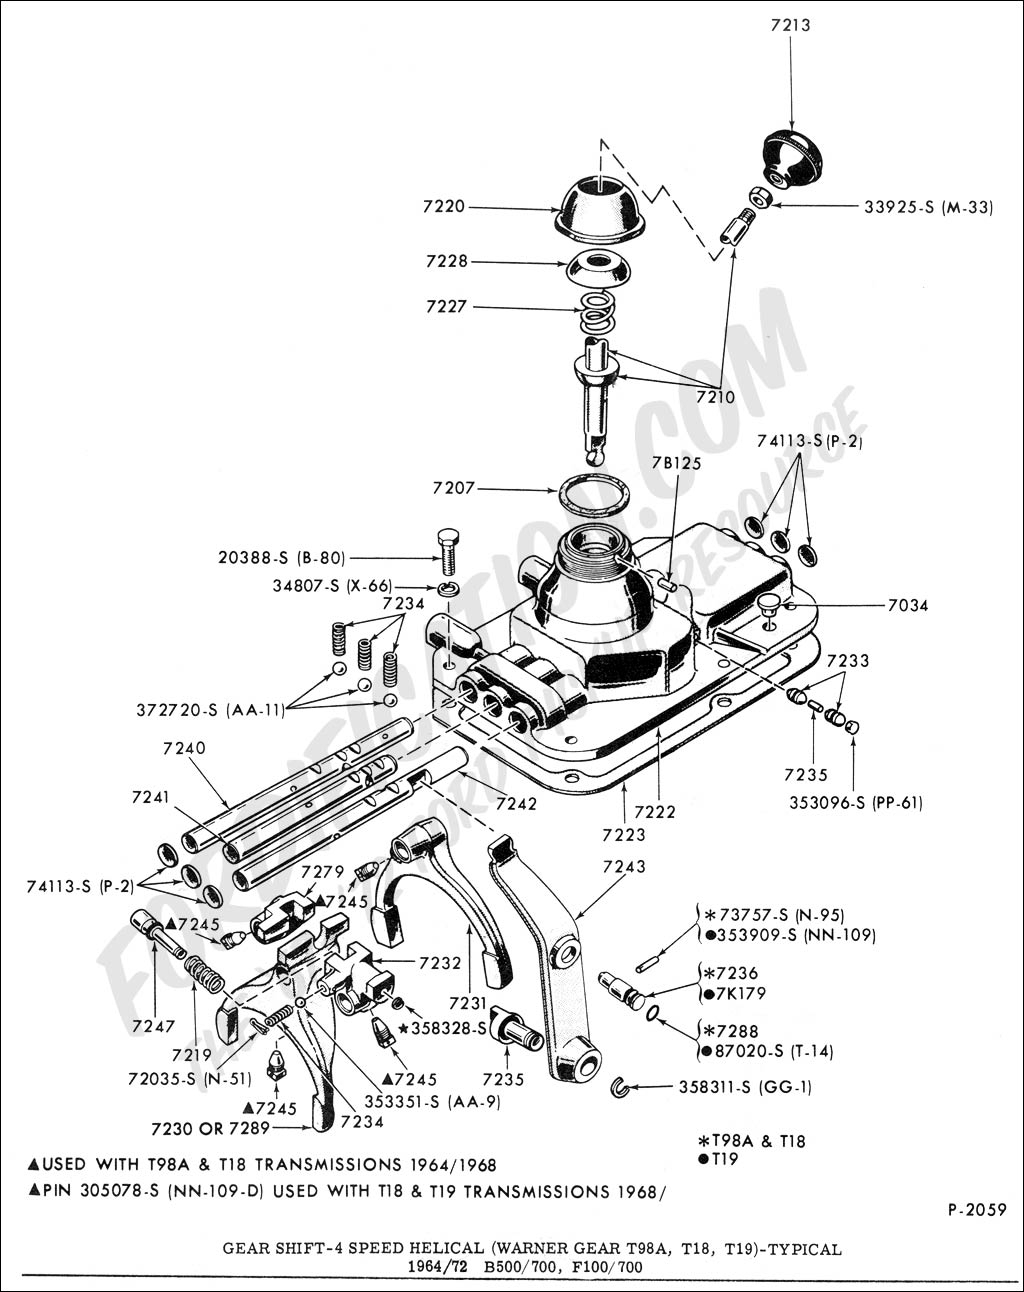 1024x1292 Gear Shift Diagram Ford Truck Technical Drawings And Schematics